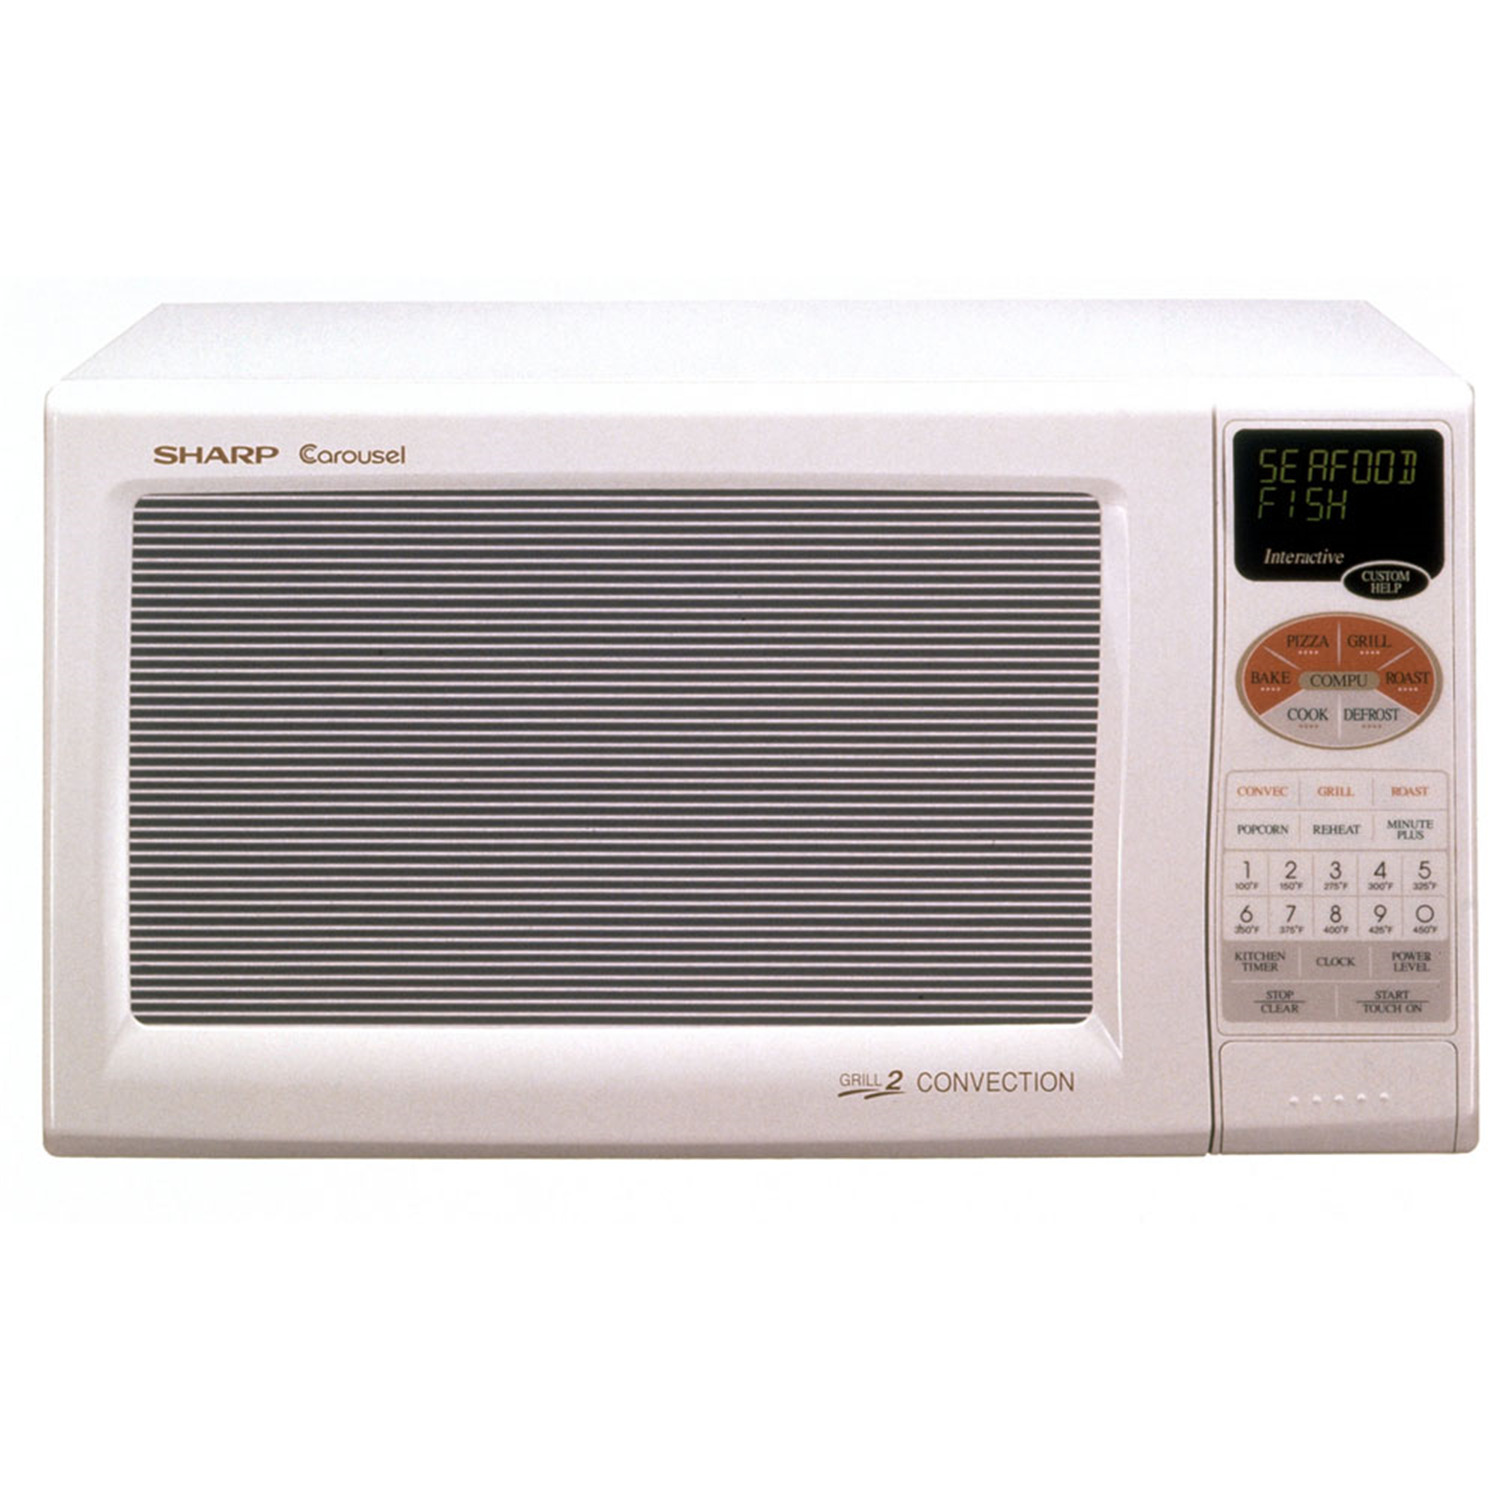 Countertop Convection Oven With Microwave : ... cu. ft. 900W Grill 2 Compact Countertop Convection Microwave Oven